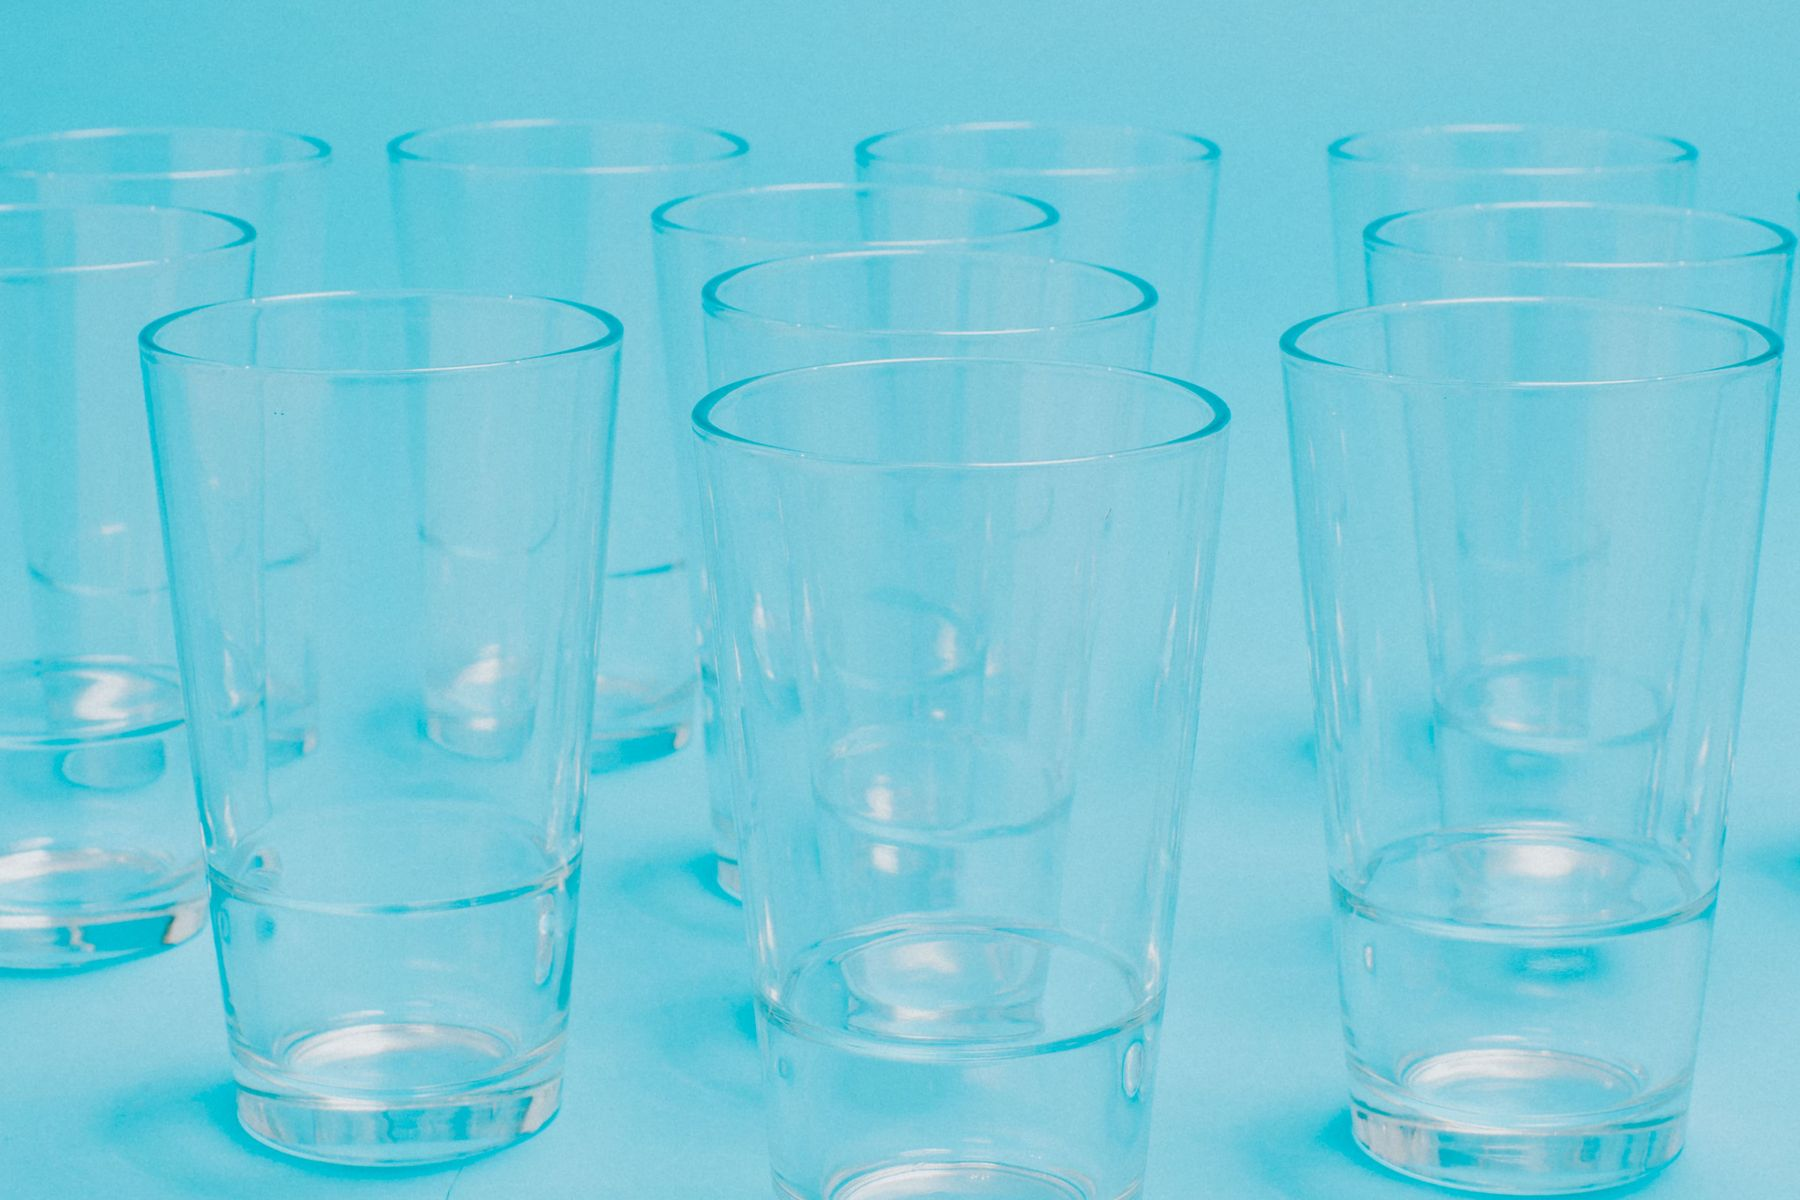 Several clean tumblers on blue background after removing stains and labels from the glass